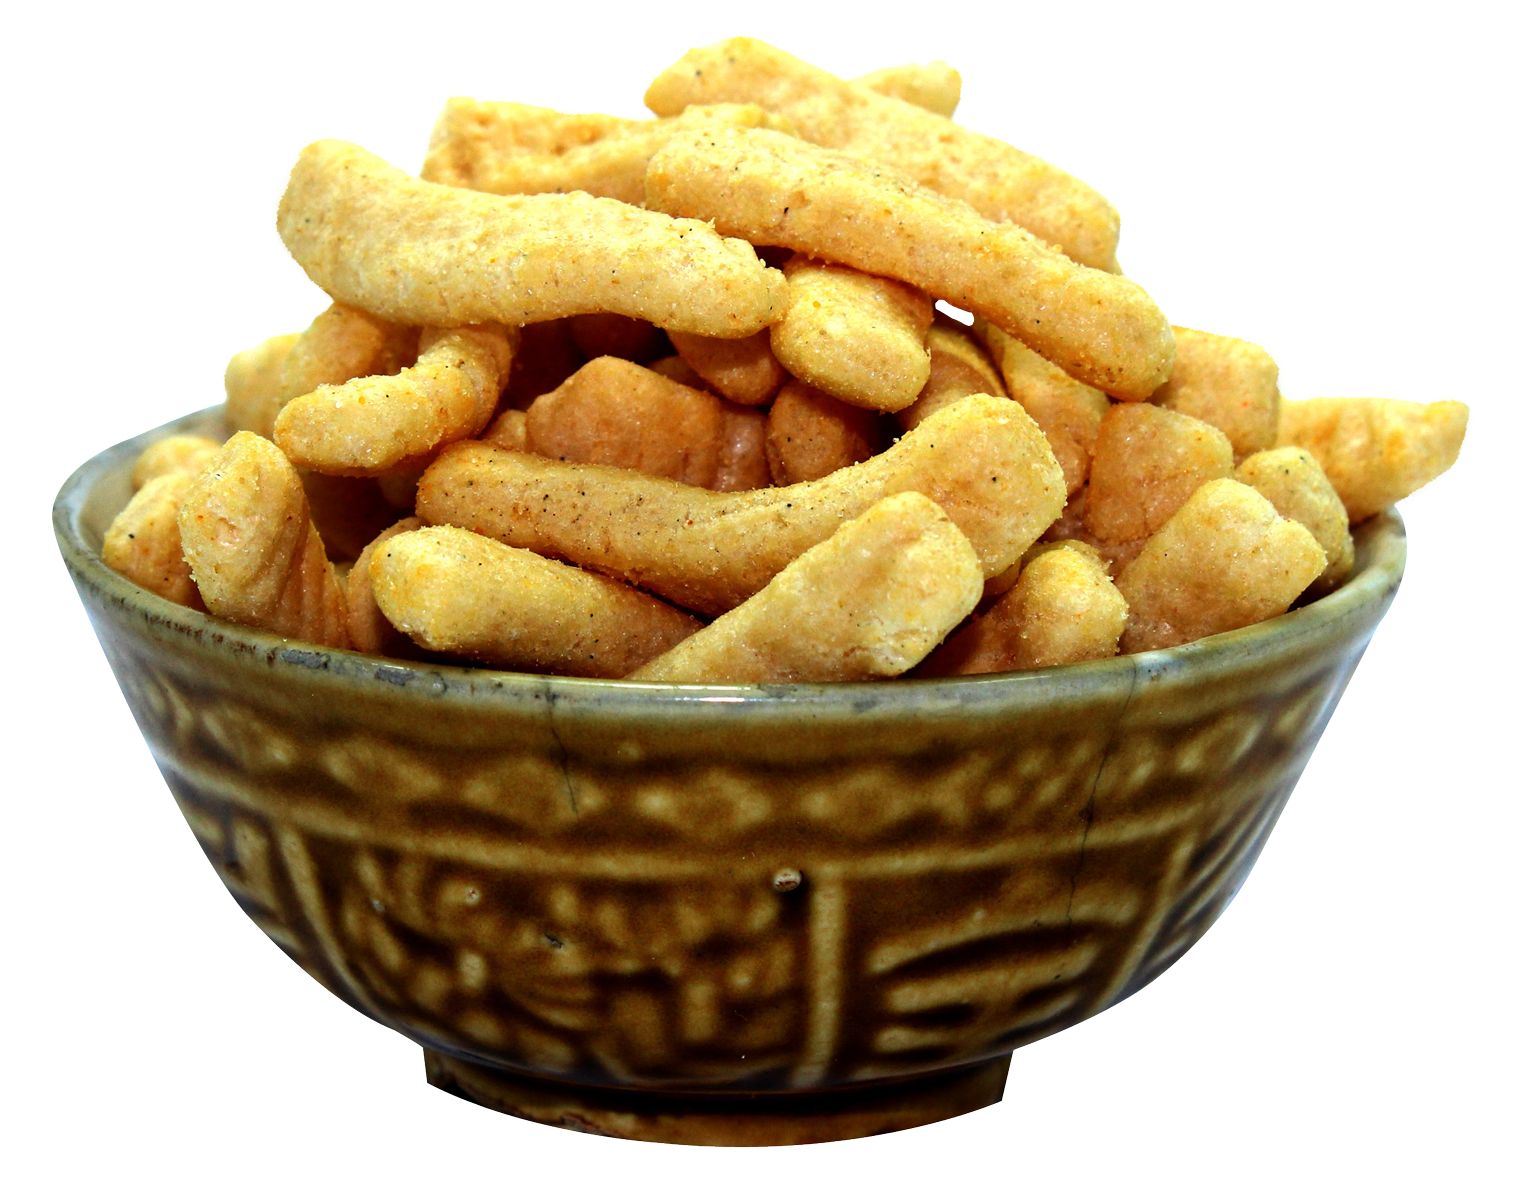 Snack Bowl PNG Image